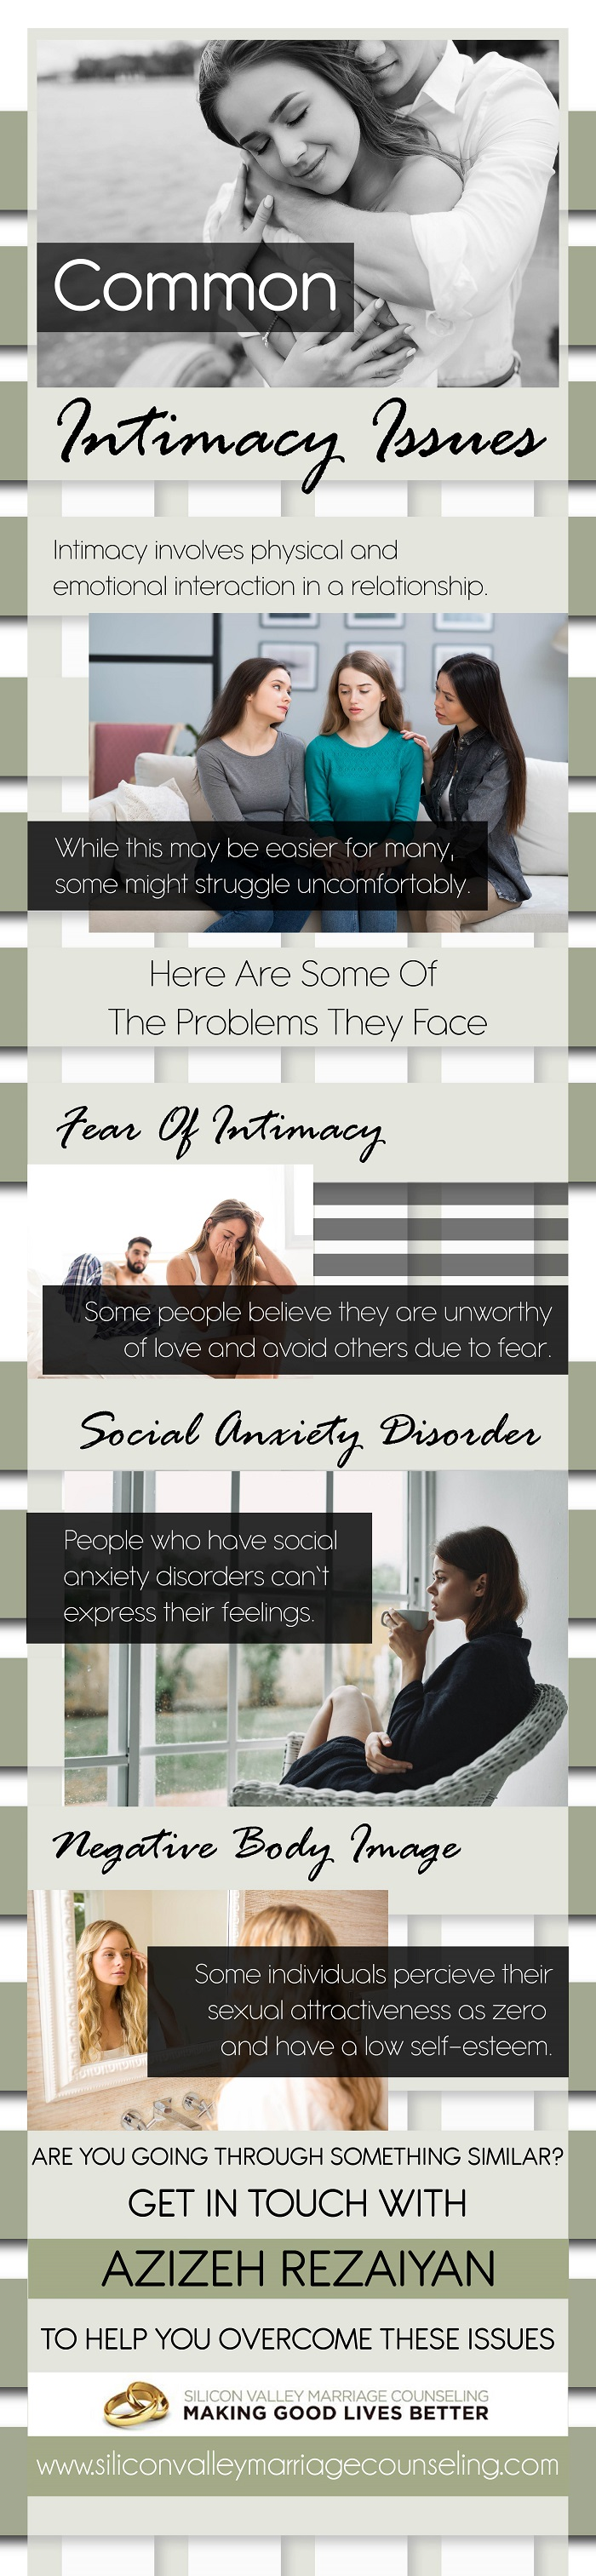 Common Intimacy Issues